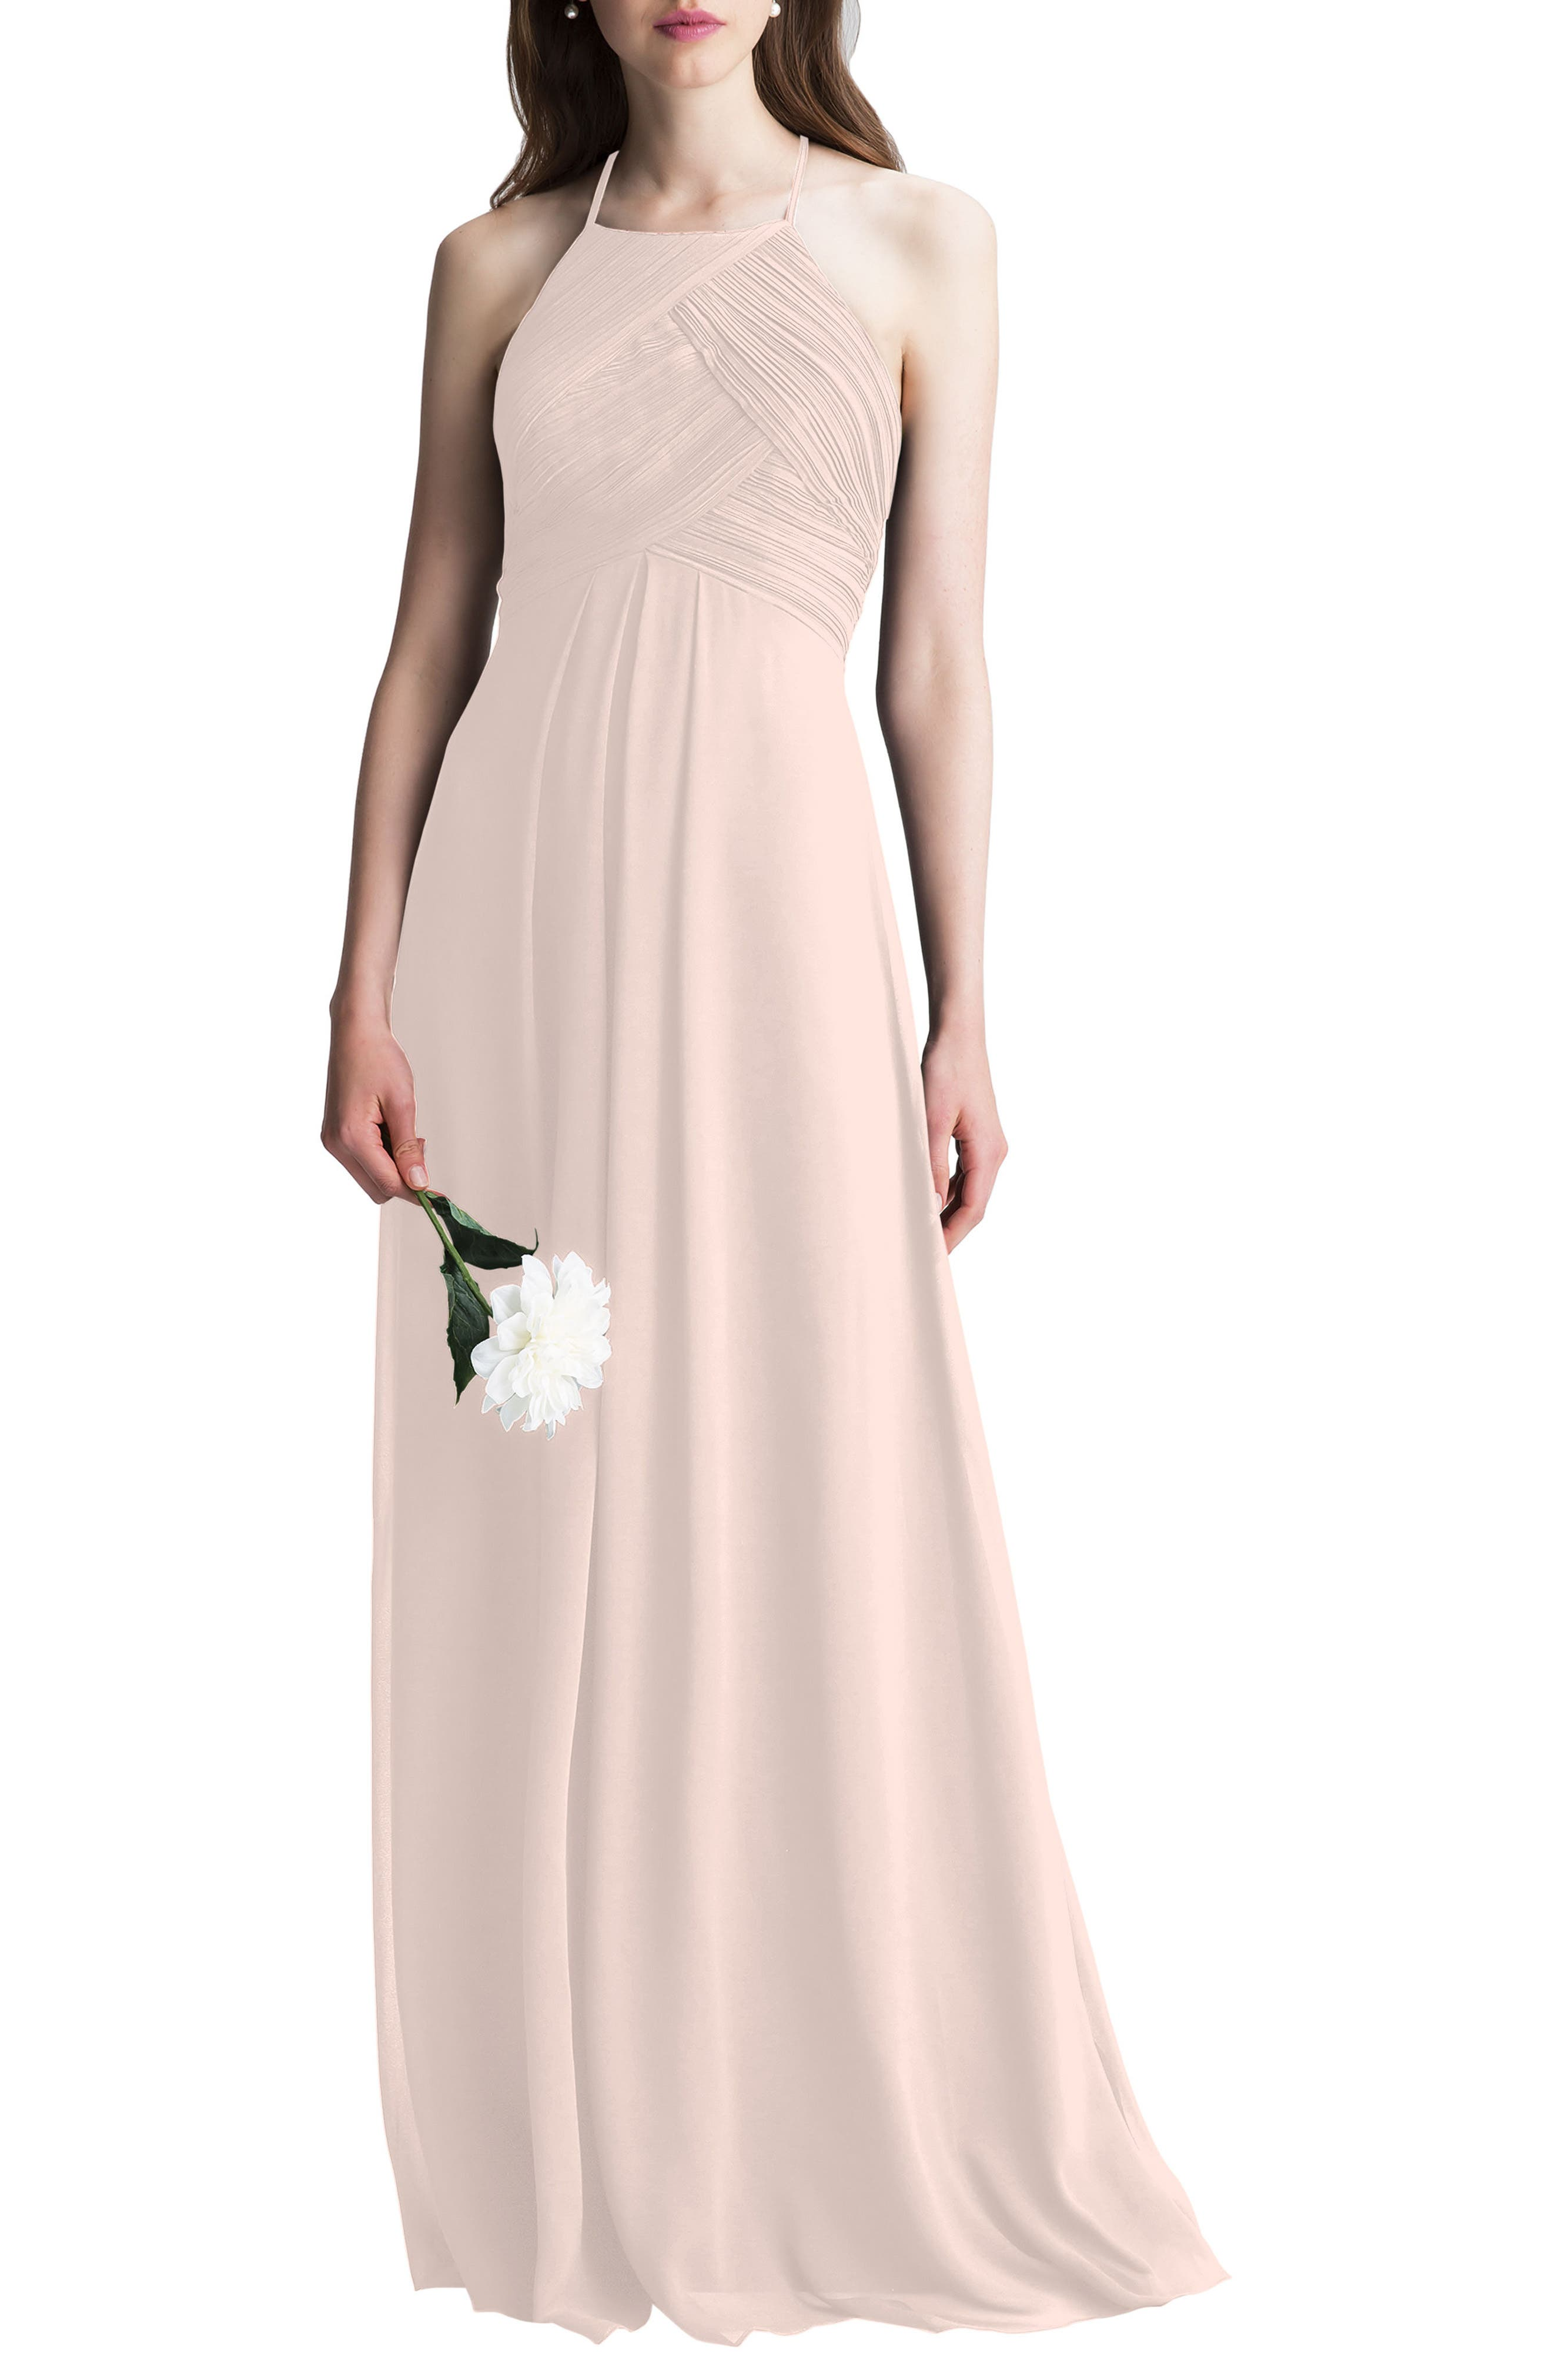 This dreamy chiffon gown is incredibly flattering from all angles thanks to its halter neckline, cutout back and floor-sweeping A-line skirt. Style Name:#levkoff Halter Chiffon A-Line Gown. Style Number: 5377387. Available in stores.